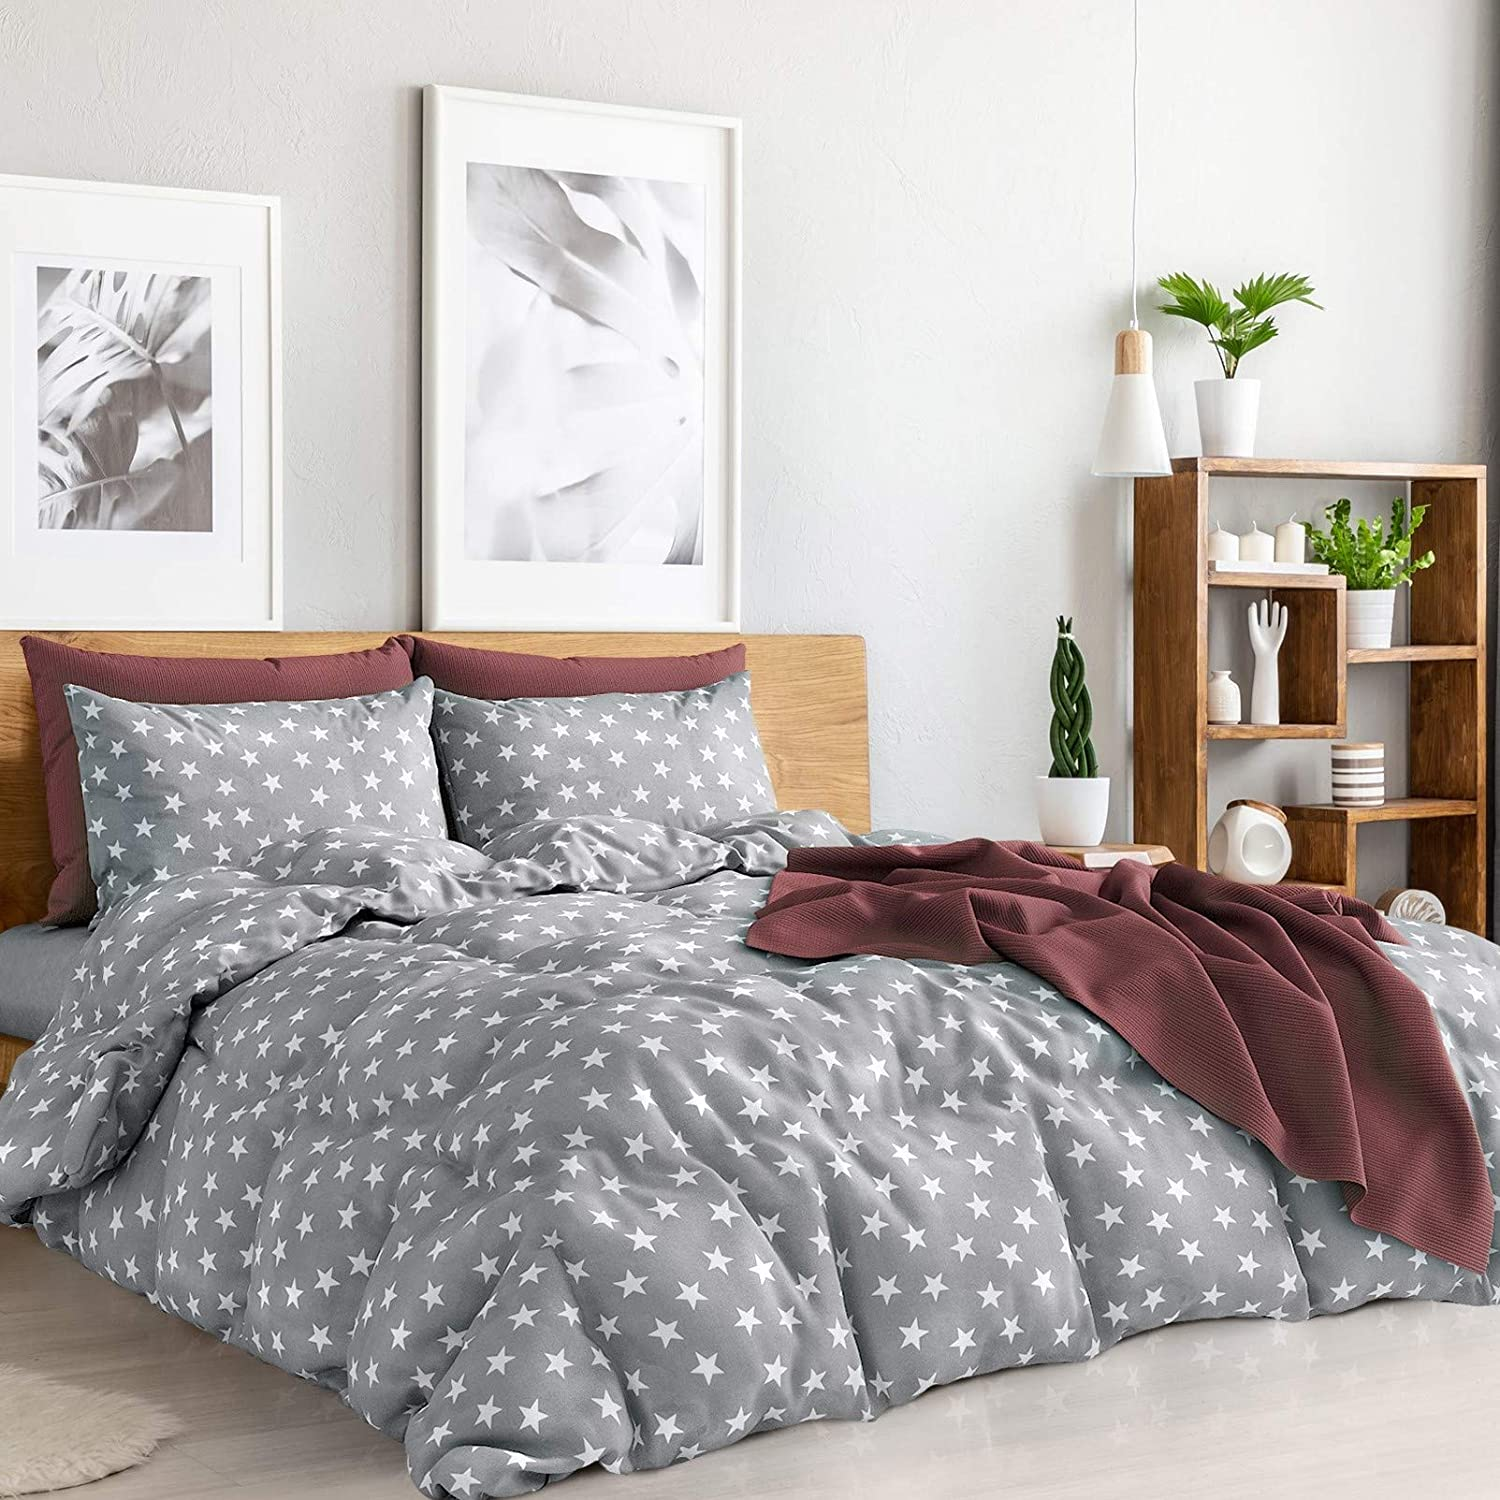 Amazon.com: Duvet Cover Queen 4 Pieces Set Grey & White Stars